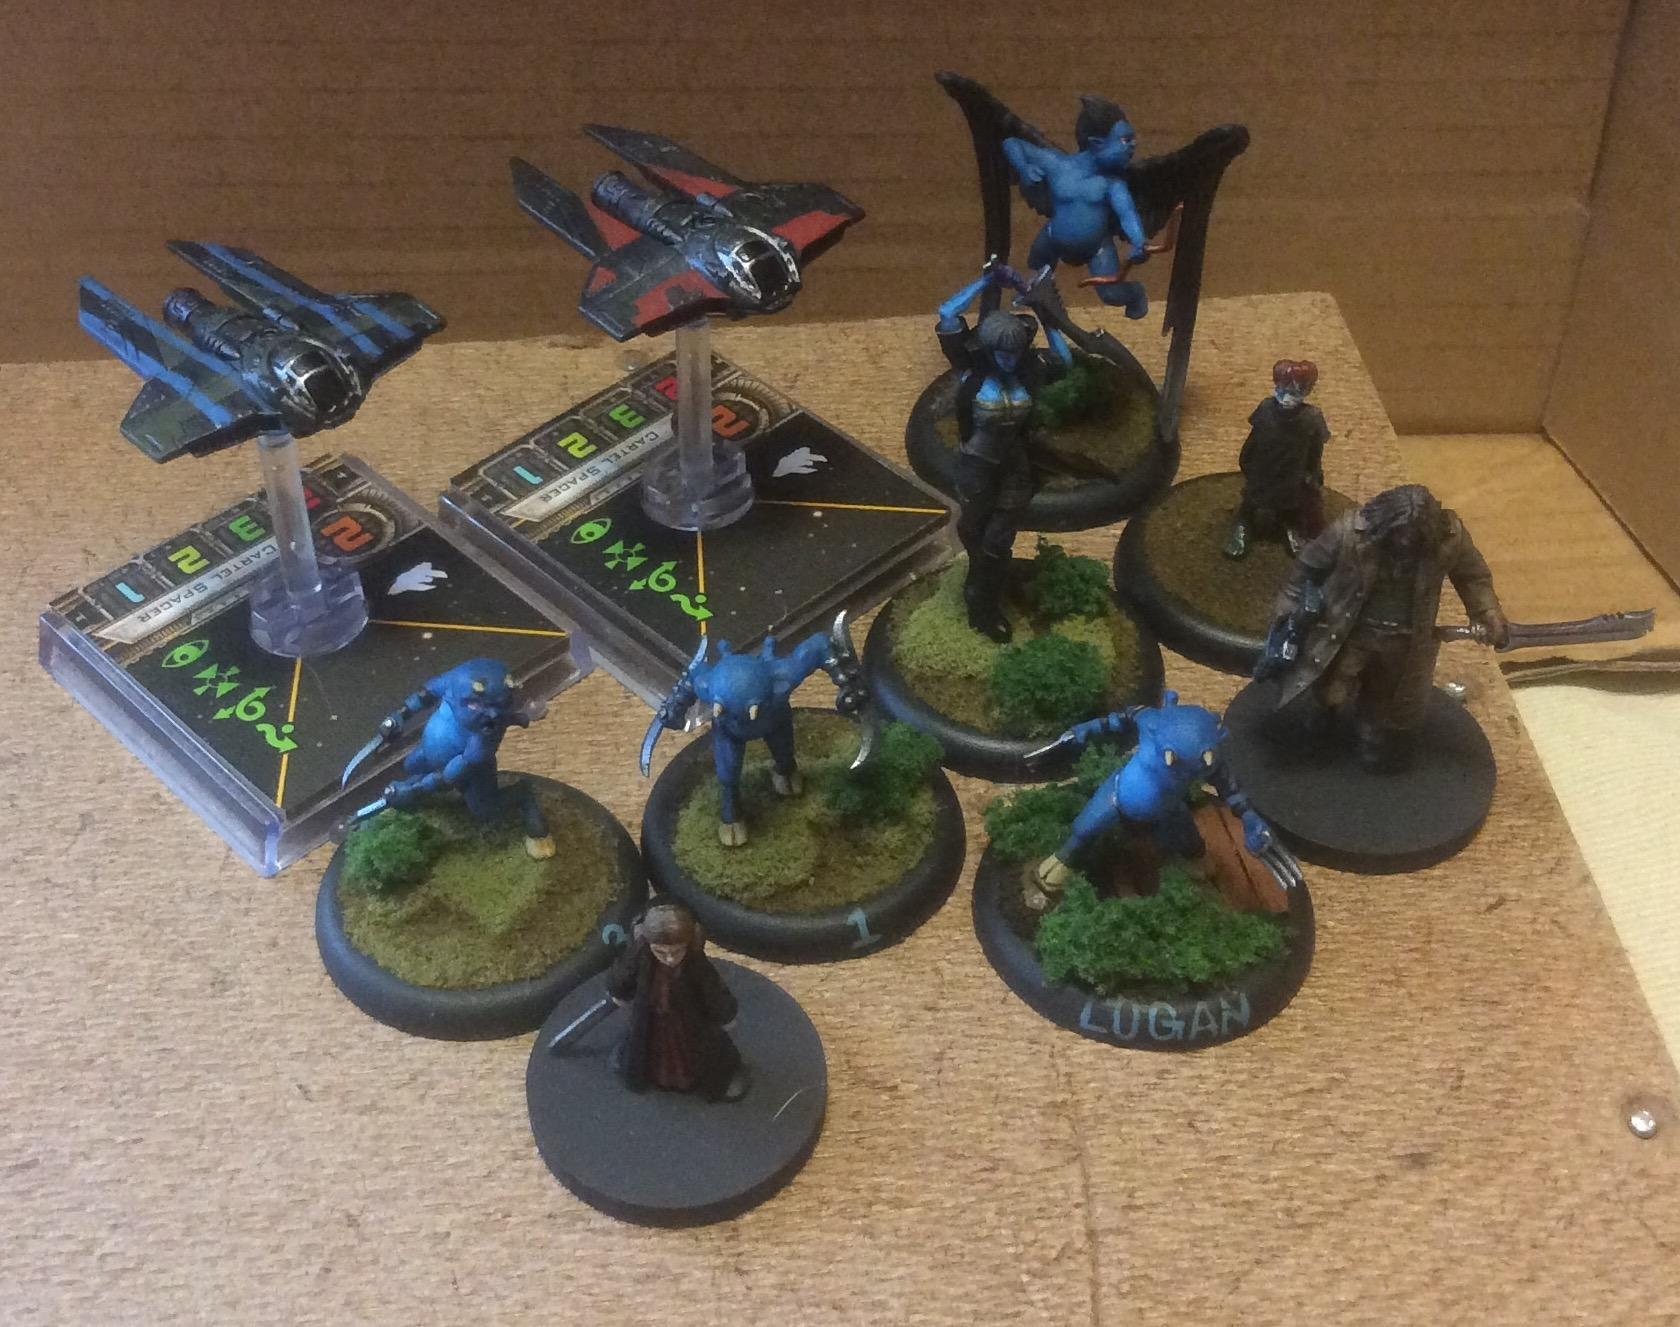 Lilith, M-3a, Malifaux, Neverborn, Syck, Terror Tots